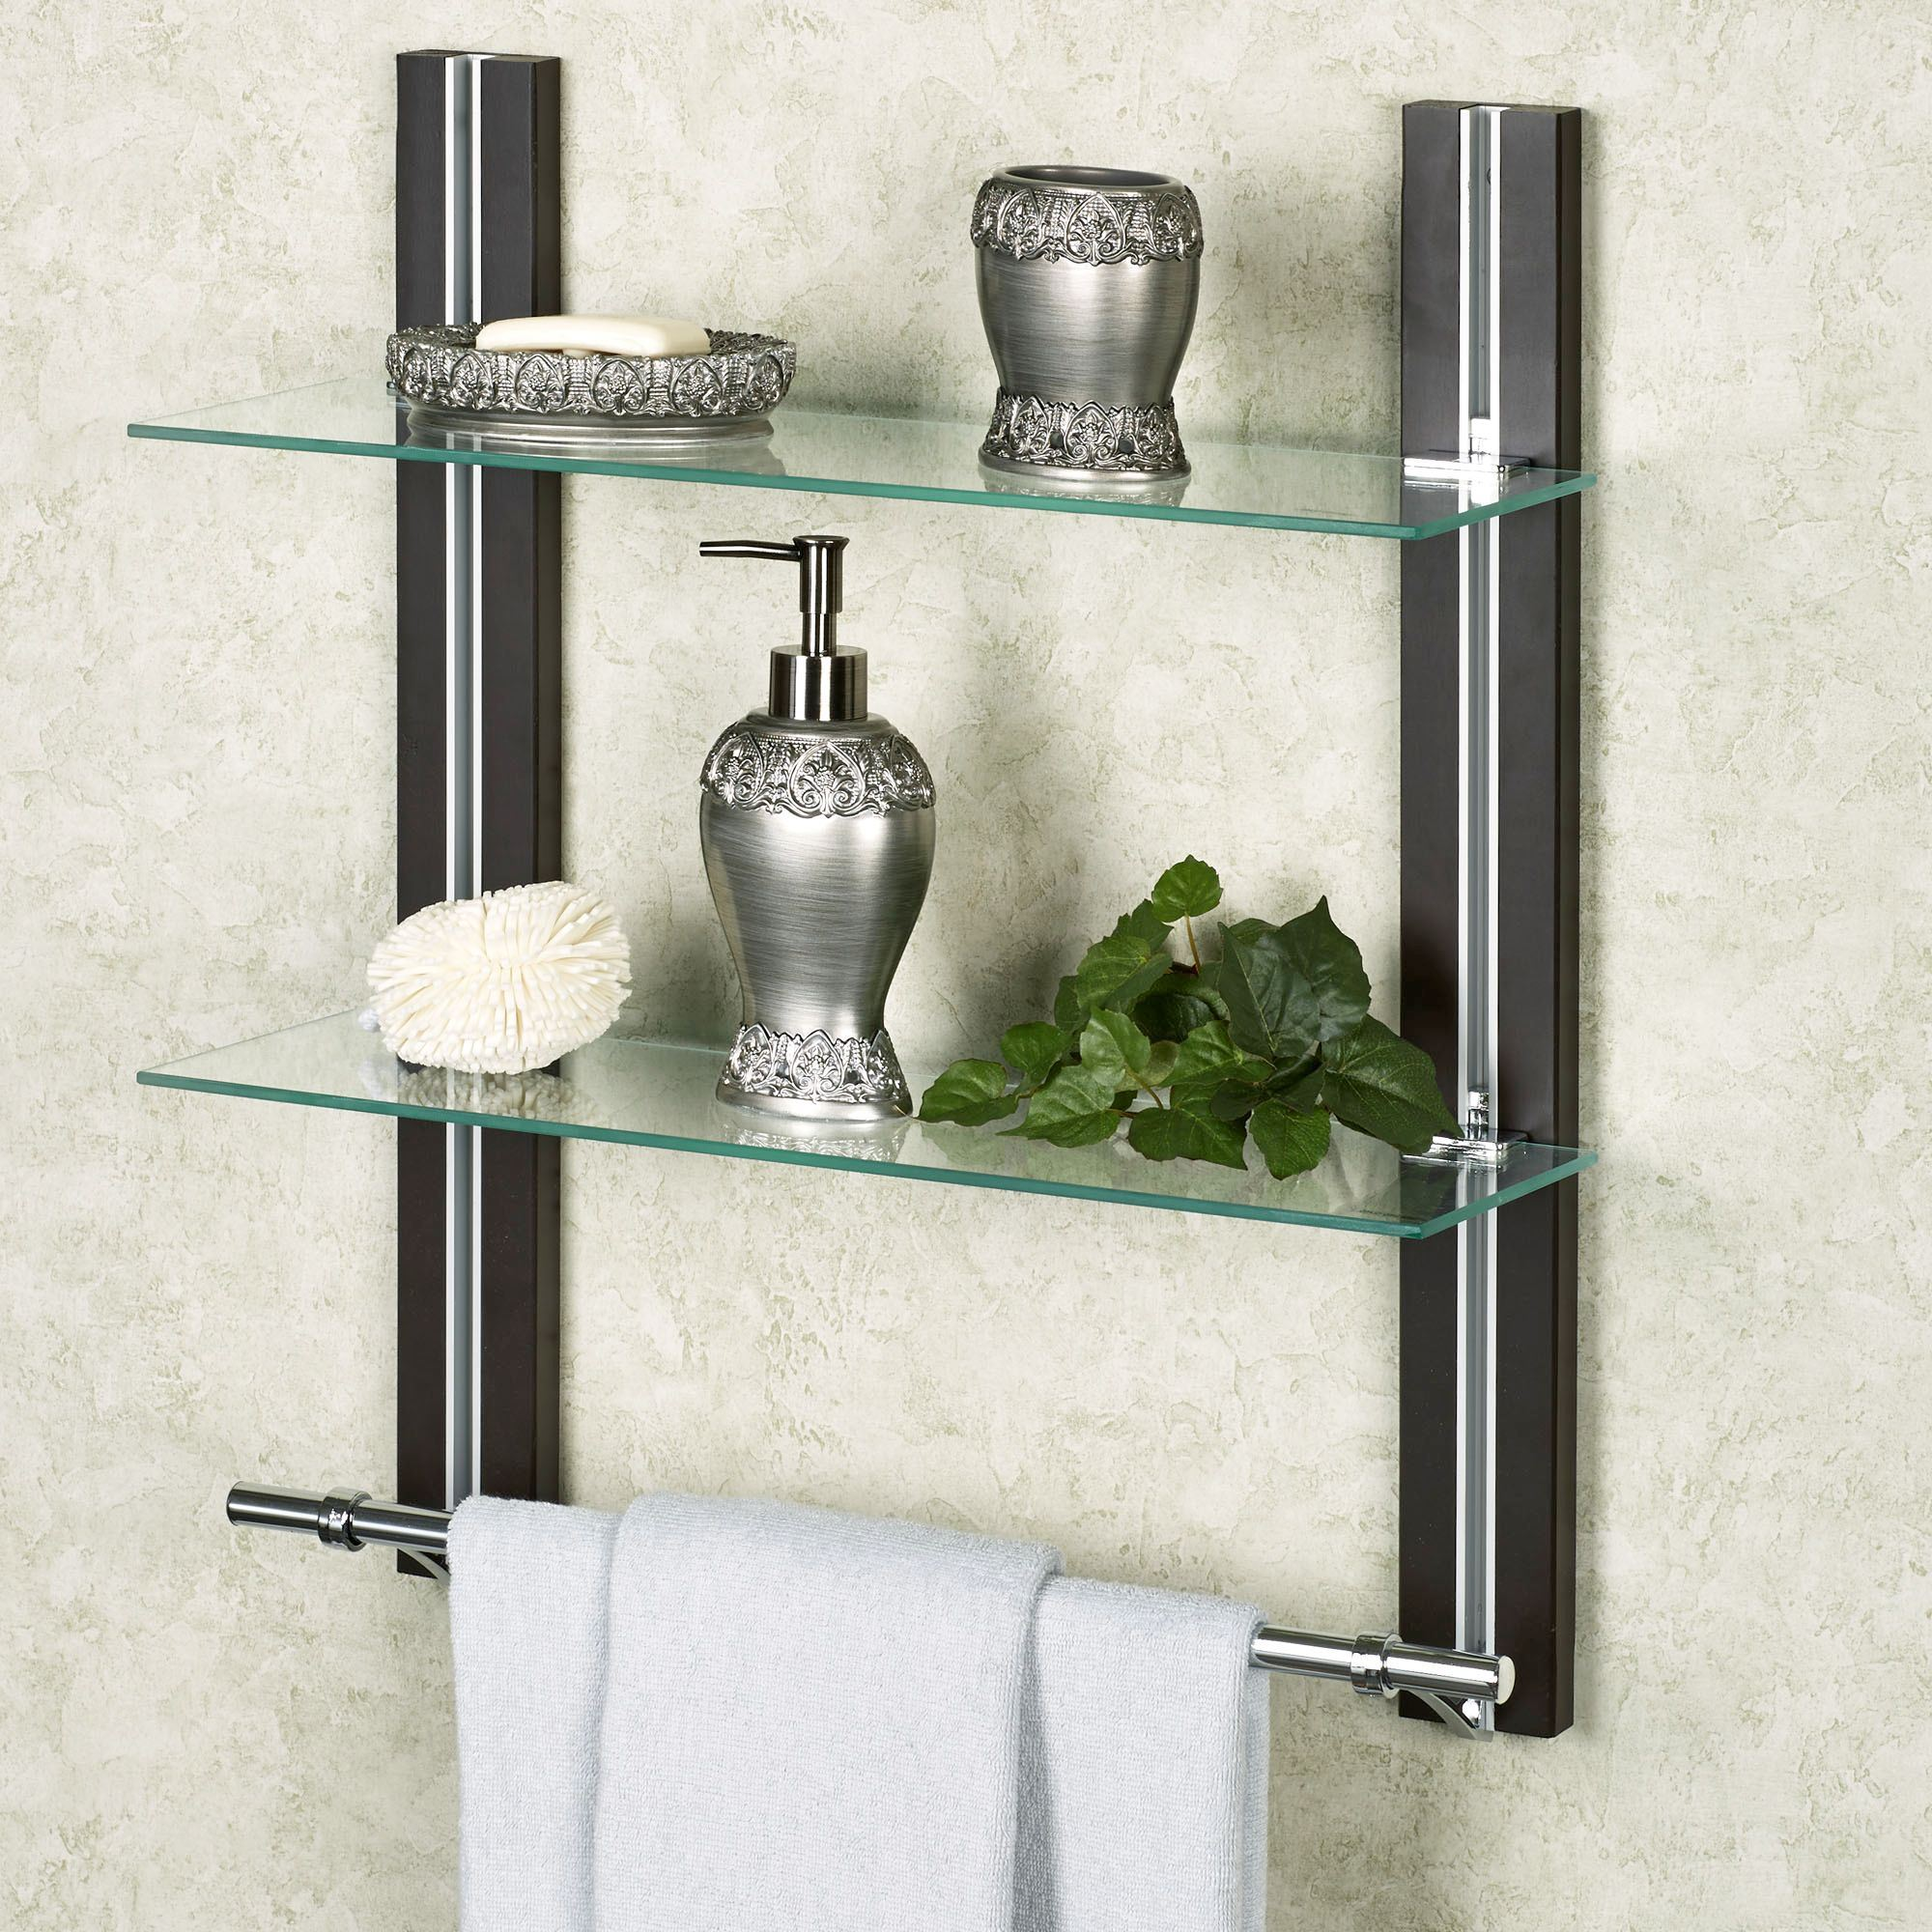 two tier glass bathroom shelf with towel bar rh touchofclass com Bathroom Shelf with Towel Bar Bathroom Shelves with Towel Bar